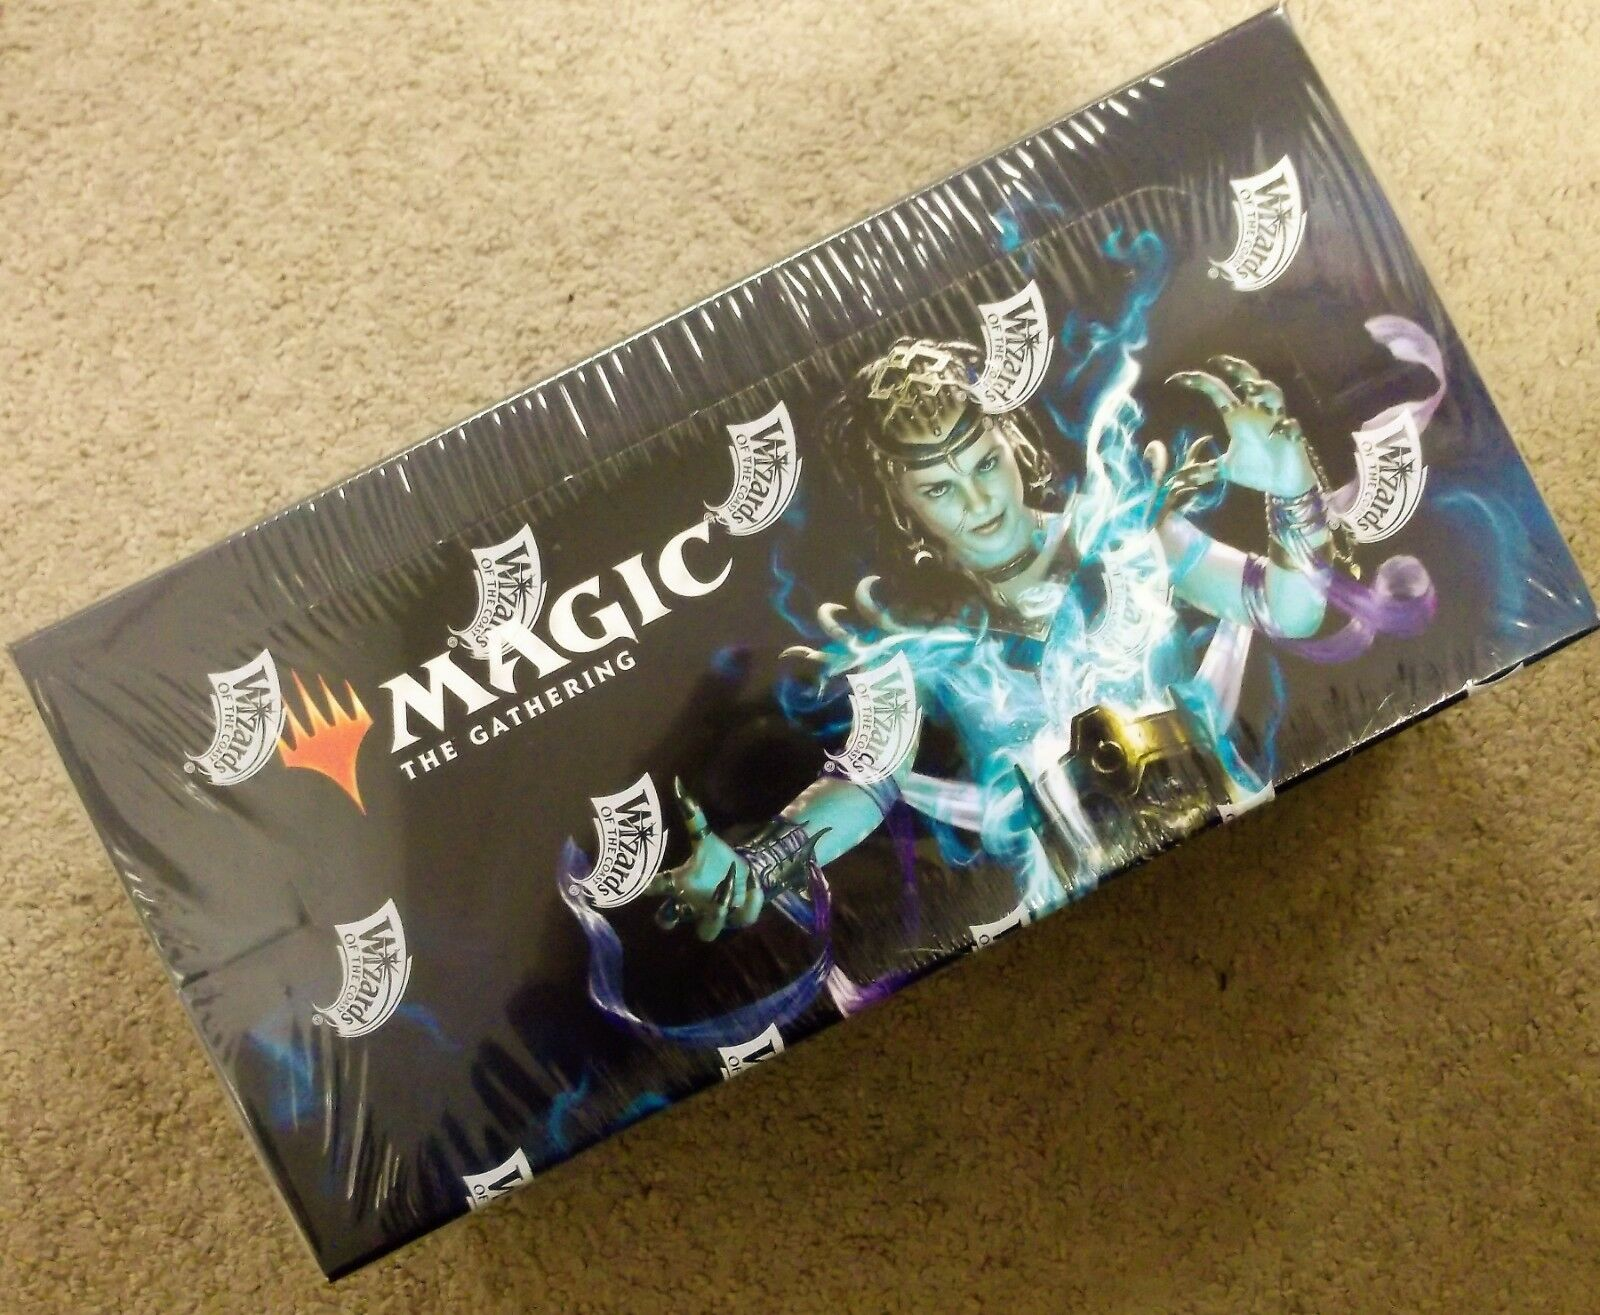 MAGIC THE GATHERING ULTIMATE ULTIMATE ULTIMATE MASTERS BOOSTER BOX SAME DAY PRIORITY SHIPPING fc9694